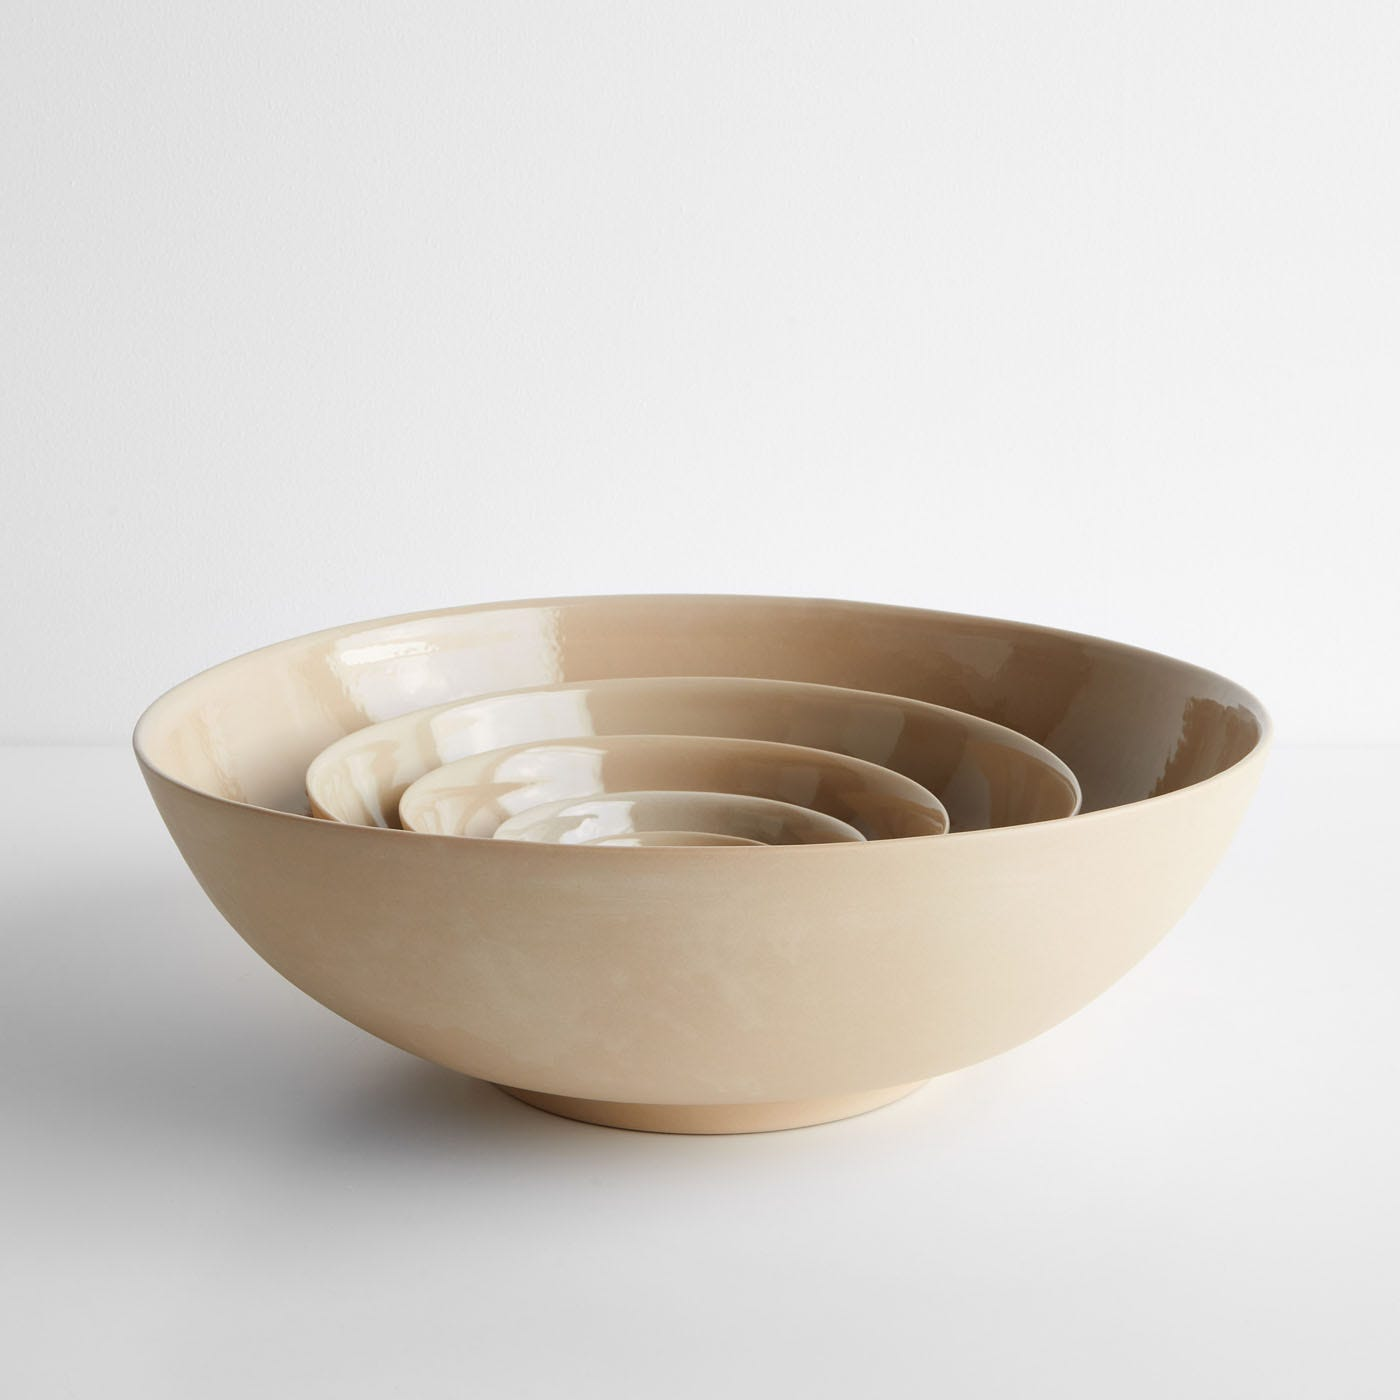 Marcy Woodland Beige Nesting Bowls Set of 5